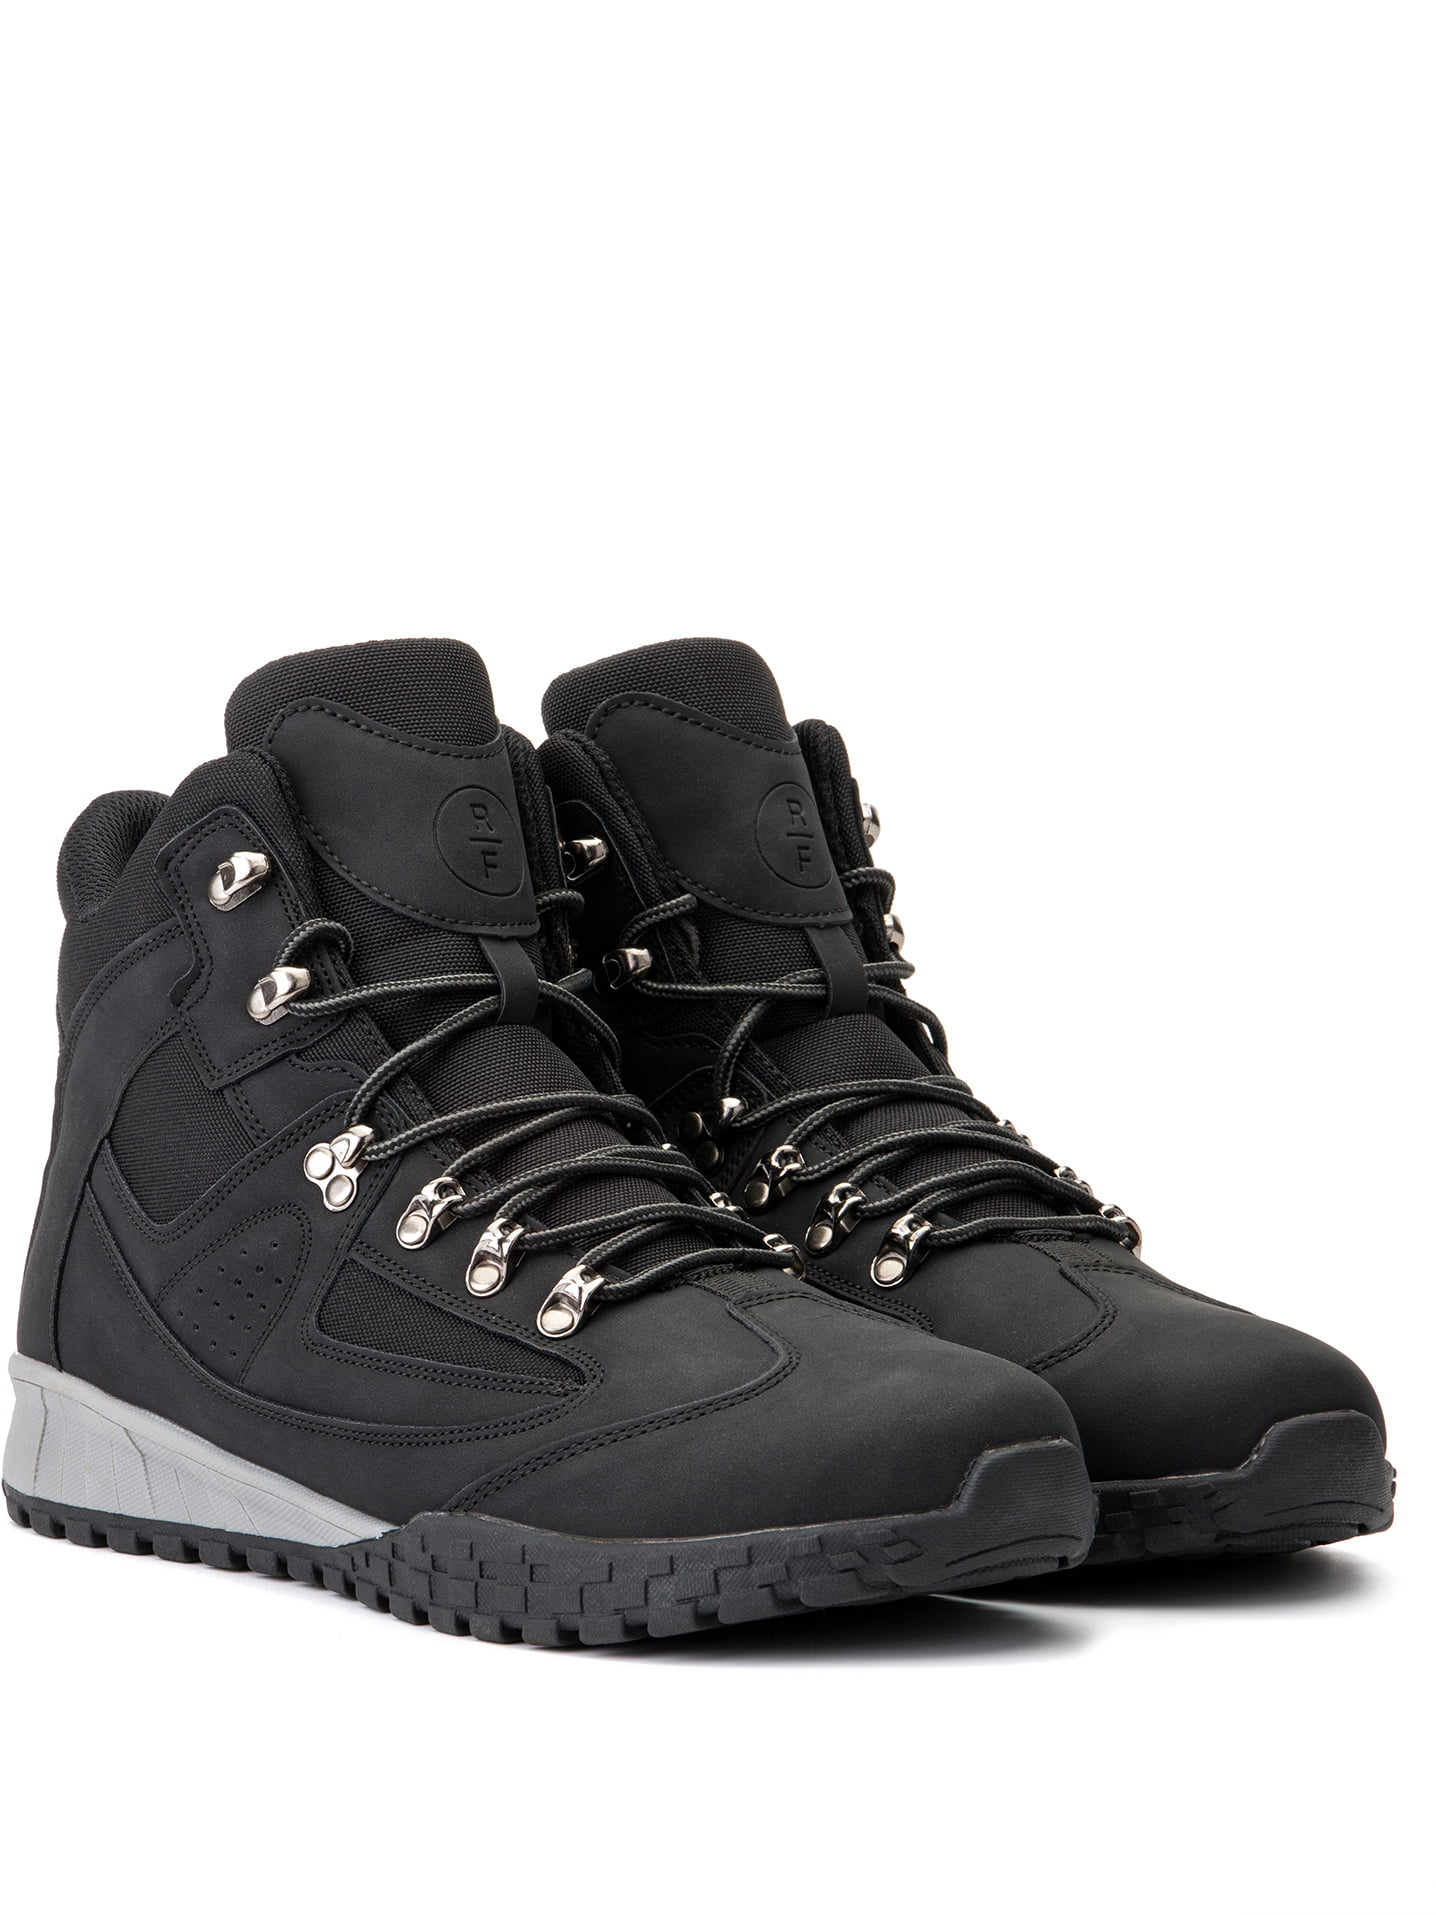 Reserved Footwear New York Reserved Footwear Men's Preston Sneaker